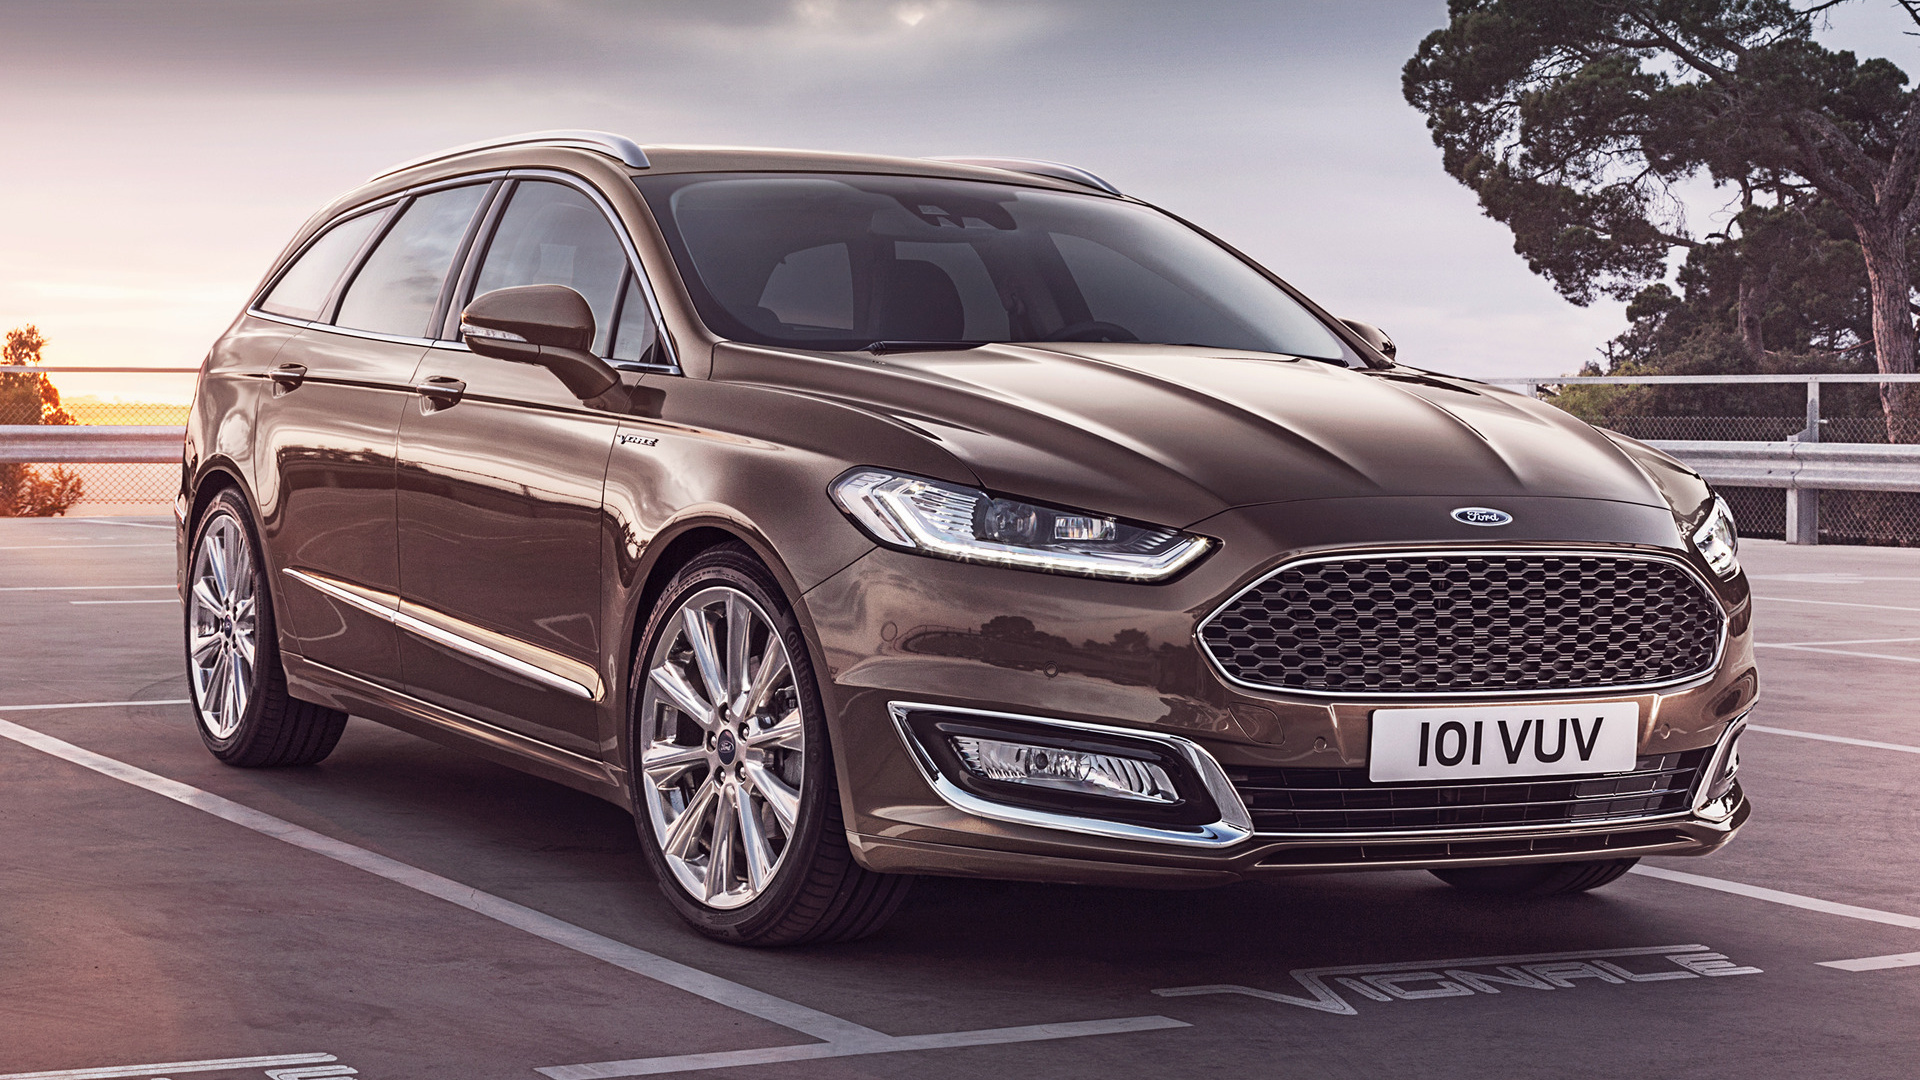 2015 Ford Vignale Mondeo Turnier   Wallpapers and HD Images Car 1920x1080